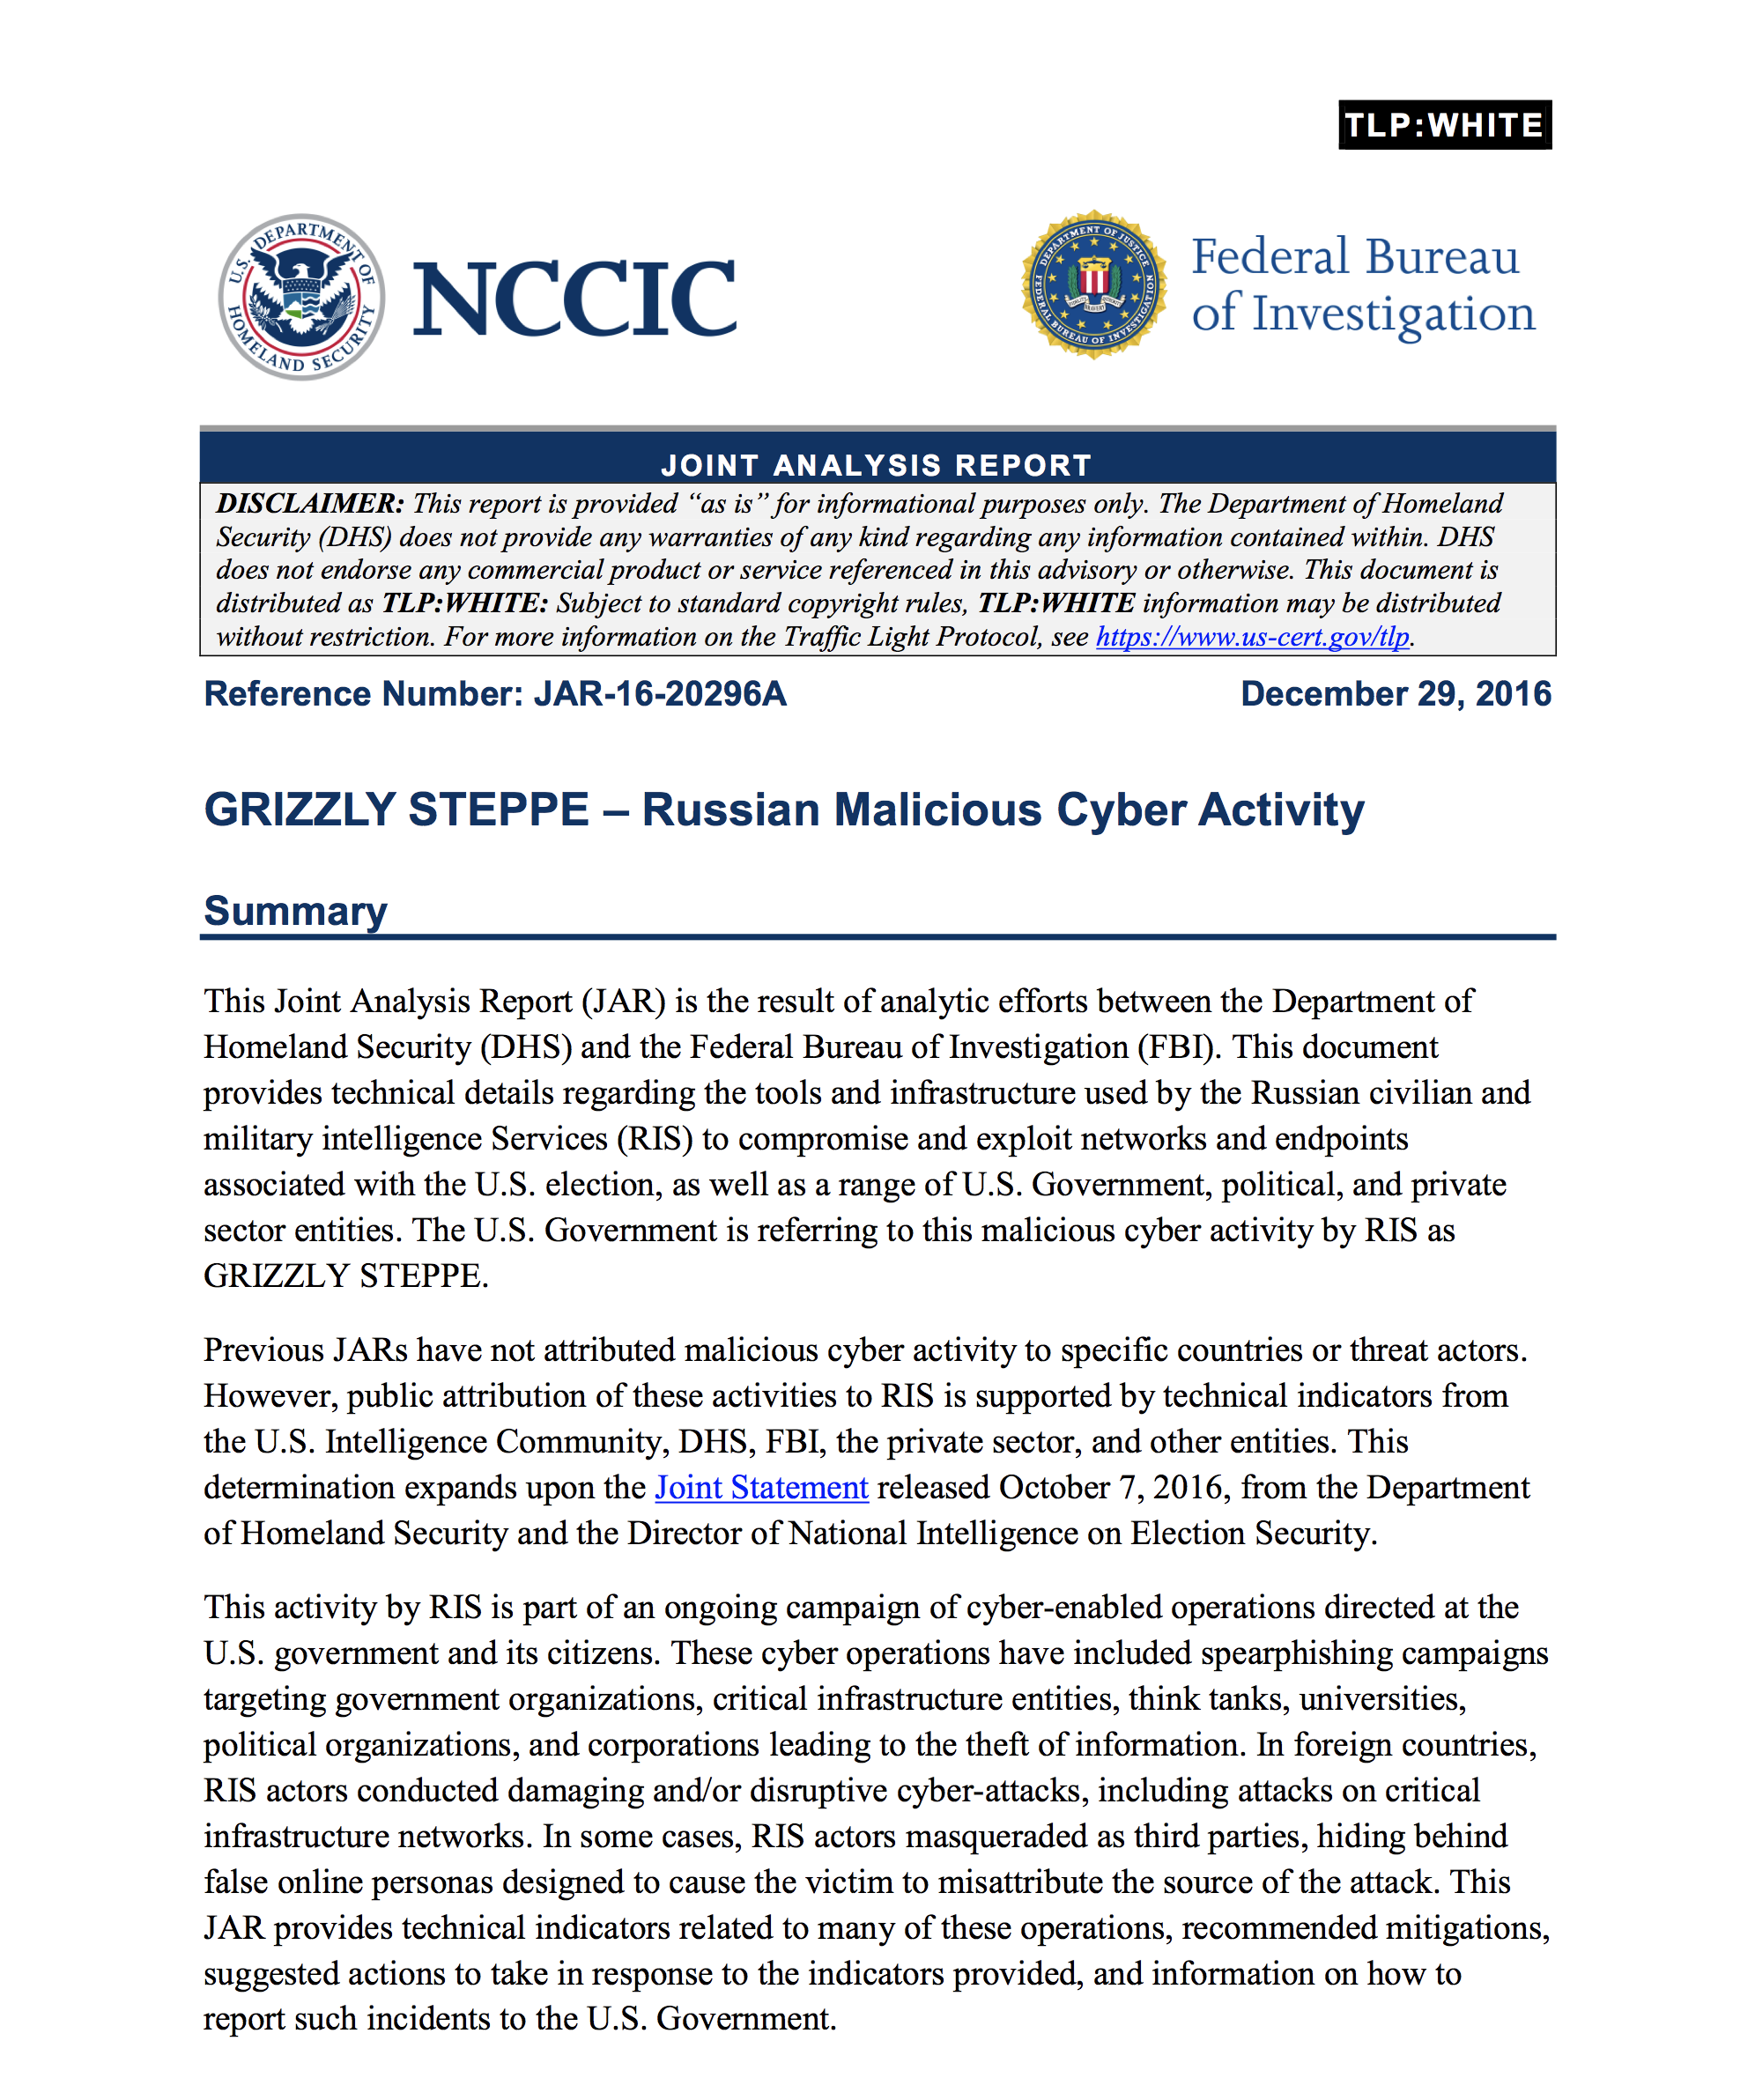 NCCIC: Joint Analysis Report